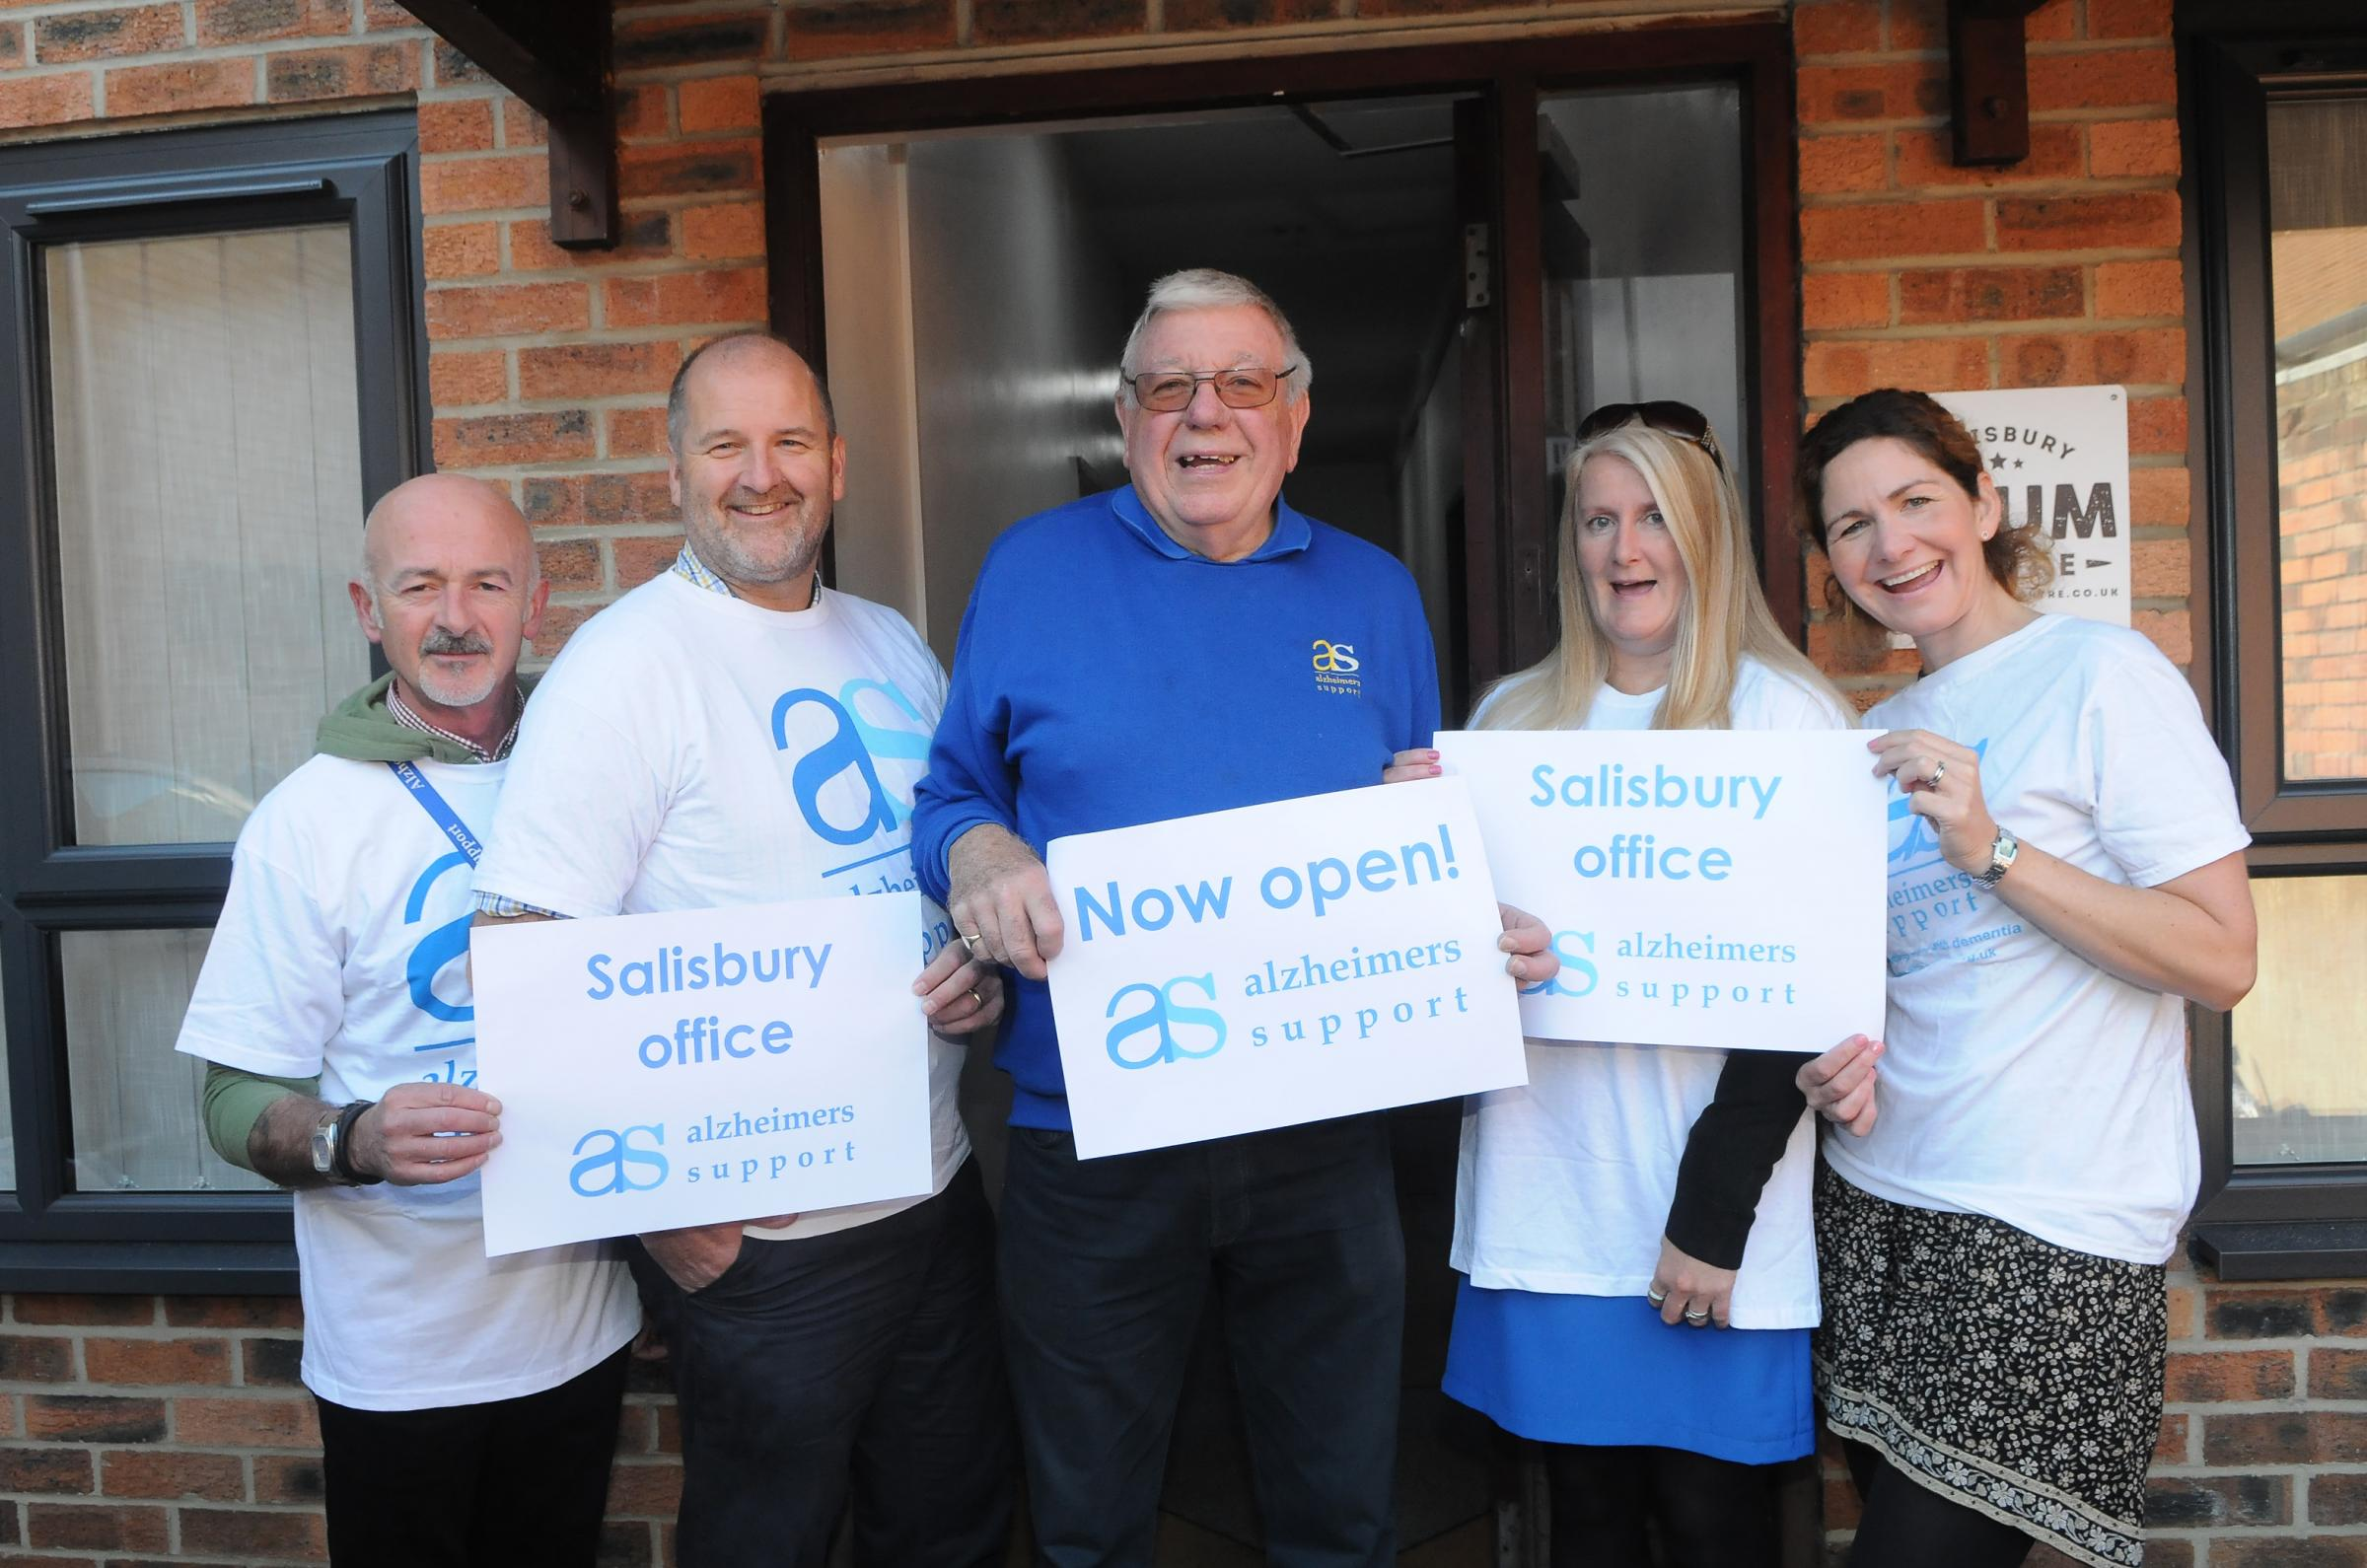 The Alzheimers Support team David Burton, Steve Slater, Harry Theobald, Amanda Smith and Kate Western outside their new office at Scotts House, Salisbury DC8814P1 Picture by Tom Gregory.